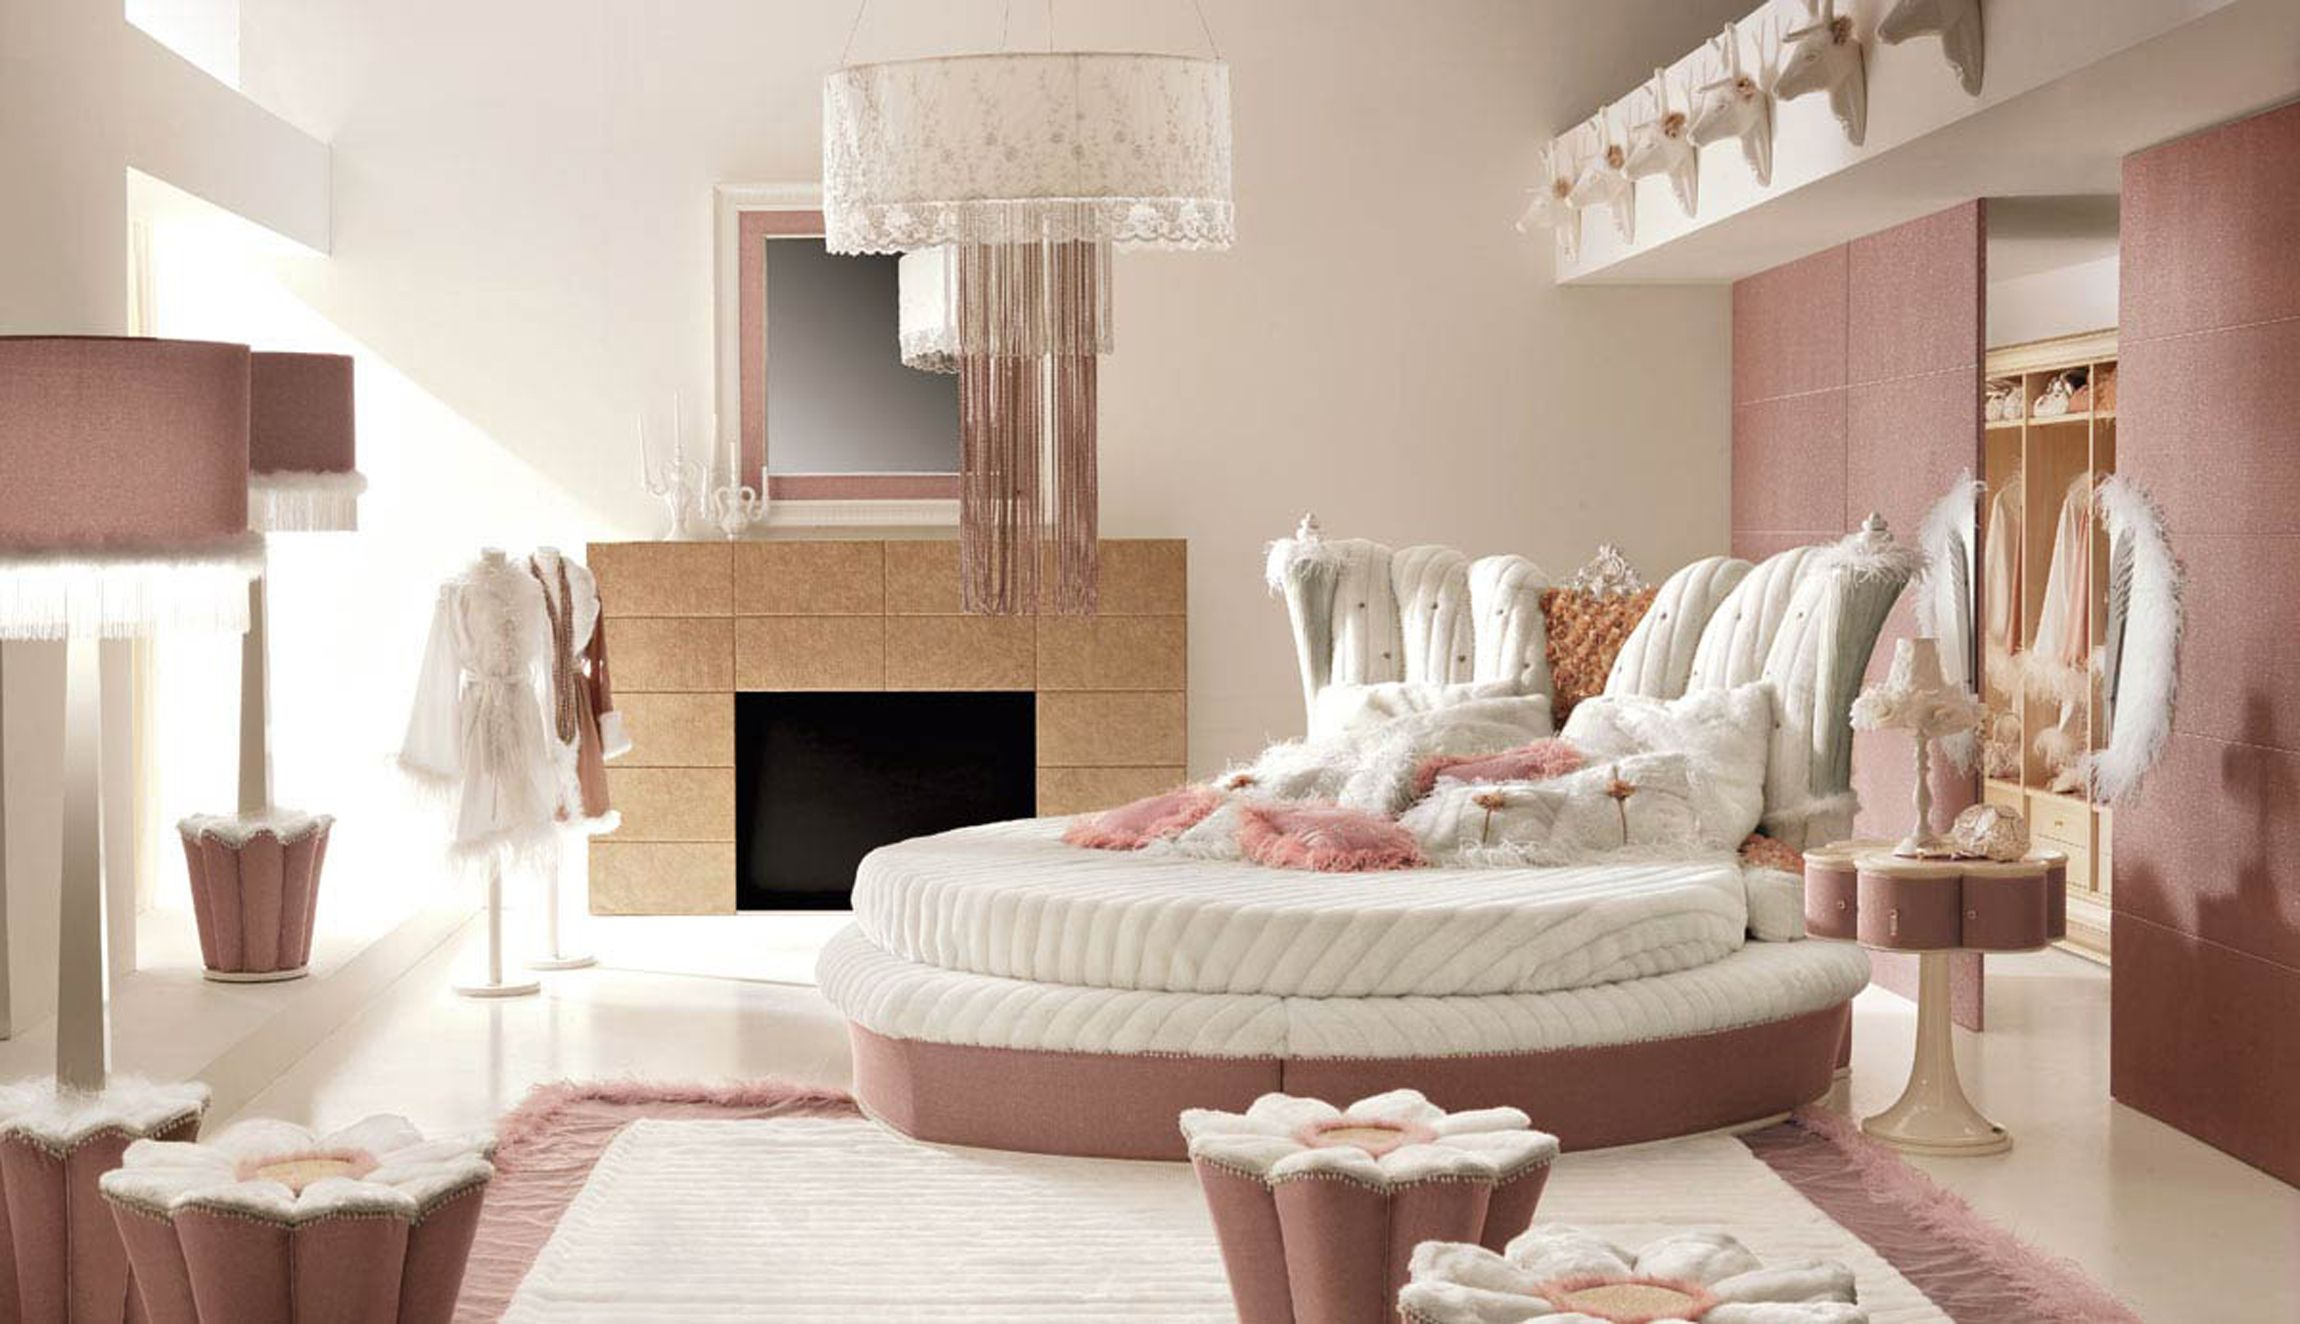 Beautiful bedroom in pink with a granite fireplace   #granite #decor #home #interior #naturalstone